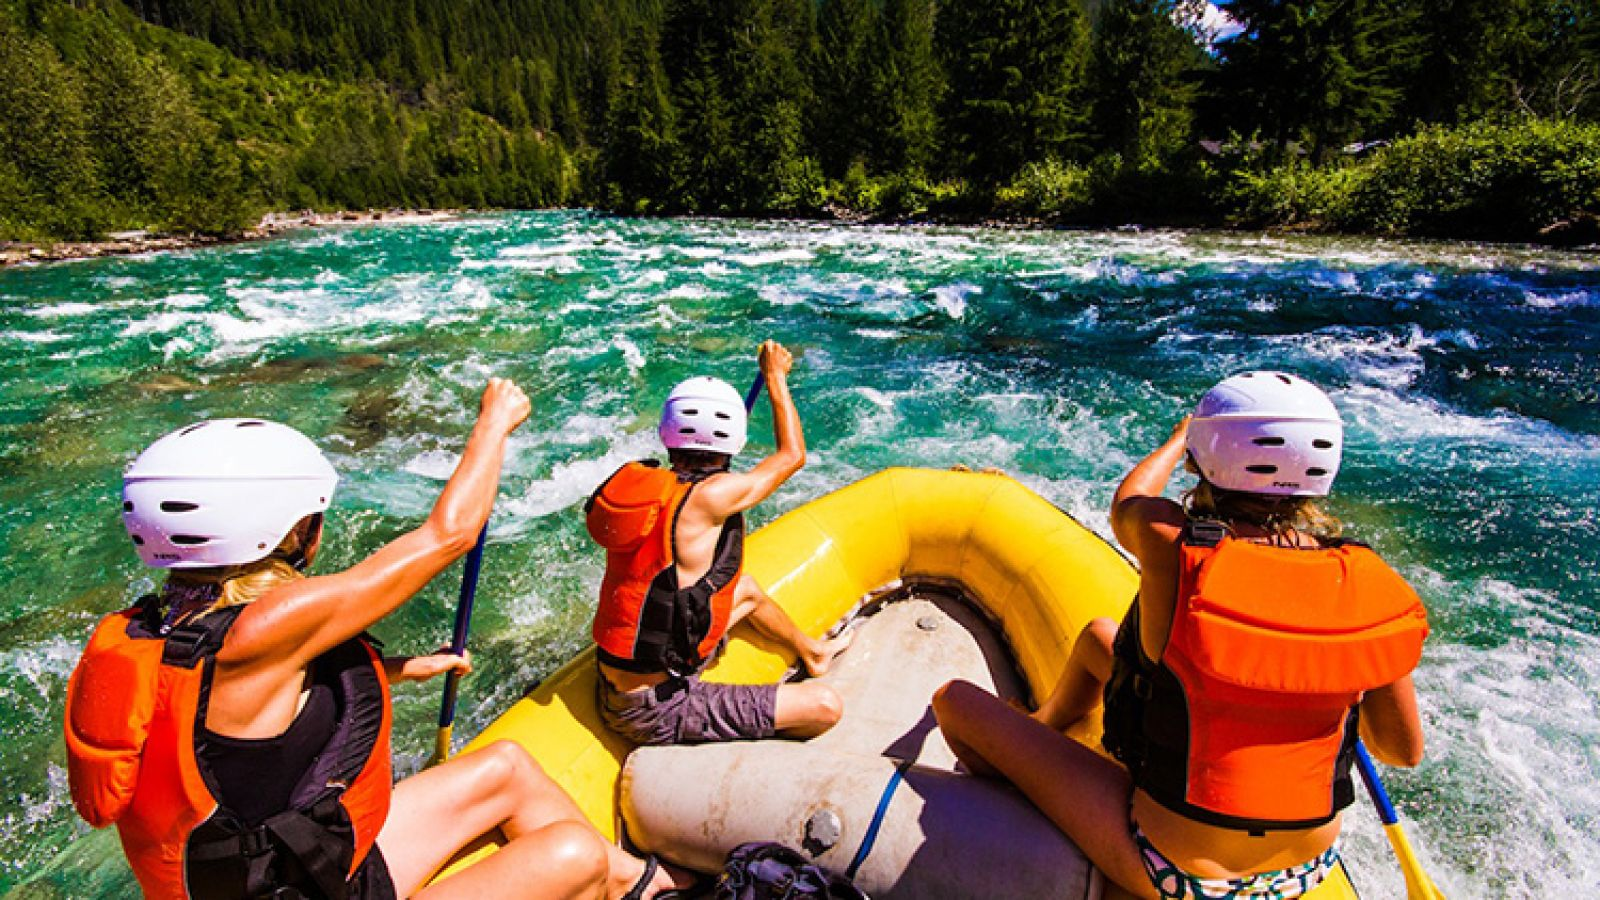 Whitewater rafting in the heart of the Kootenay Rockies.